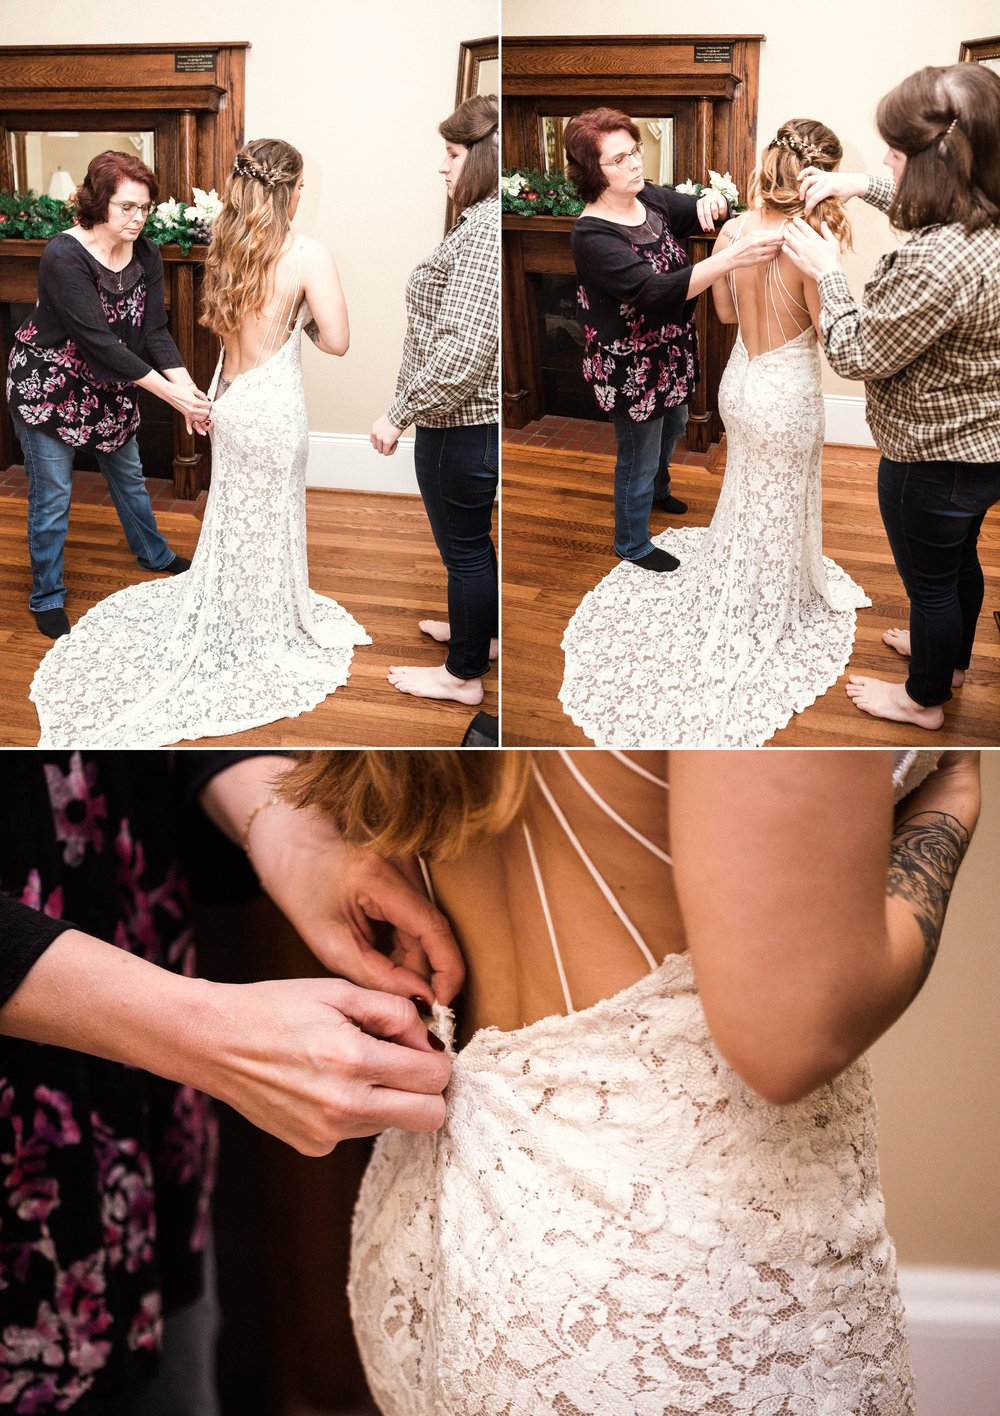 Bride getting into her dress - Jessica + Brandon - Snowy Winter Wedding at the Rand Bryan House in Garner, NC - Raleigh North Carolina Wedding Photographer